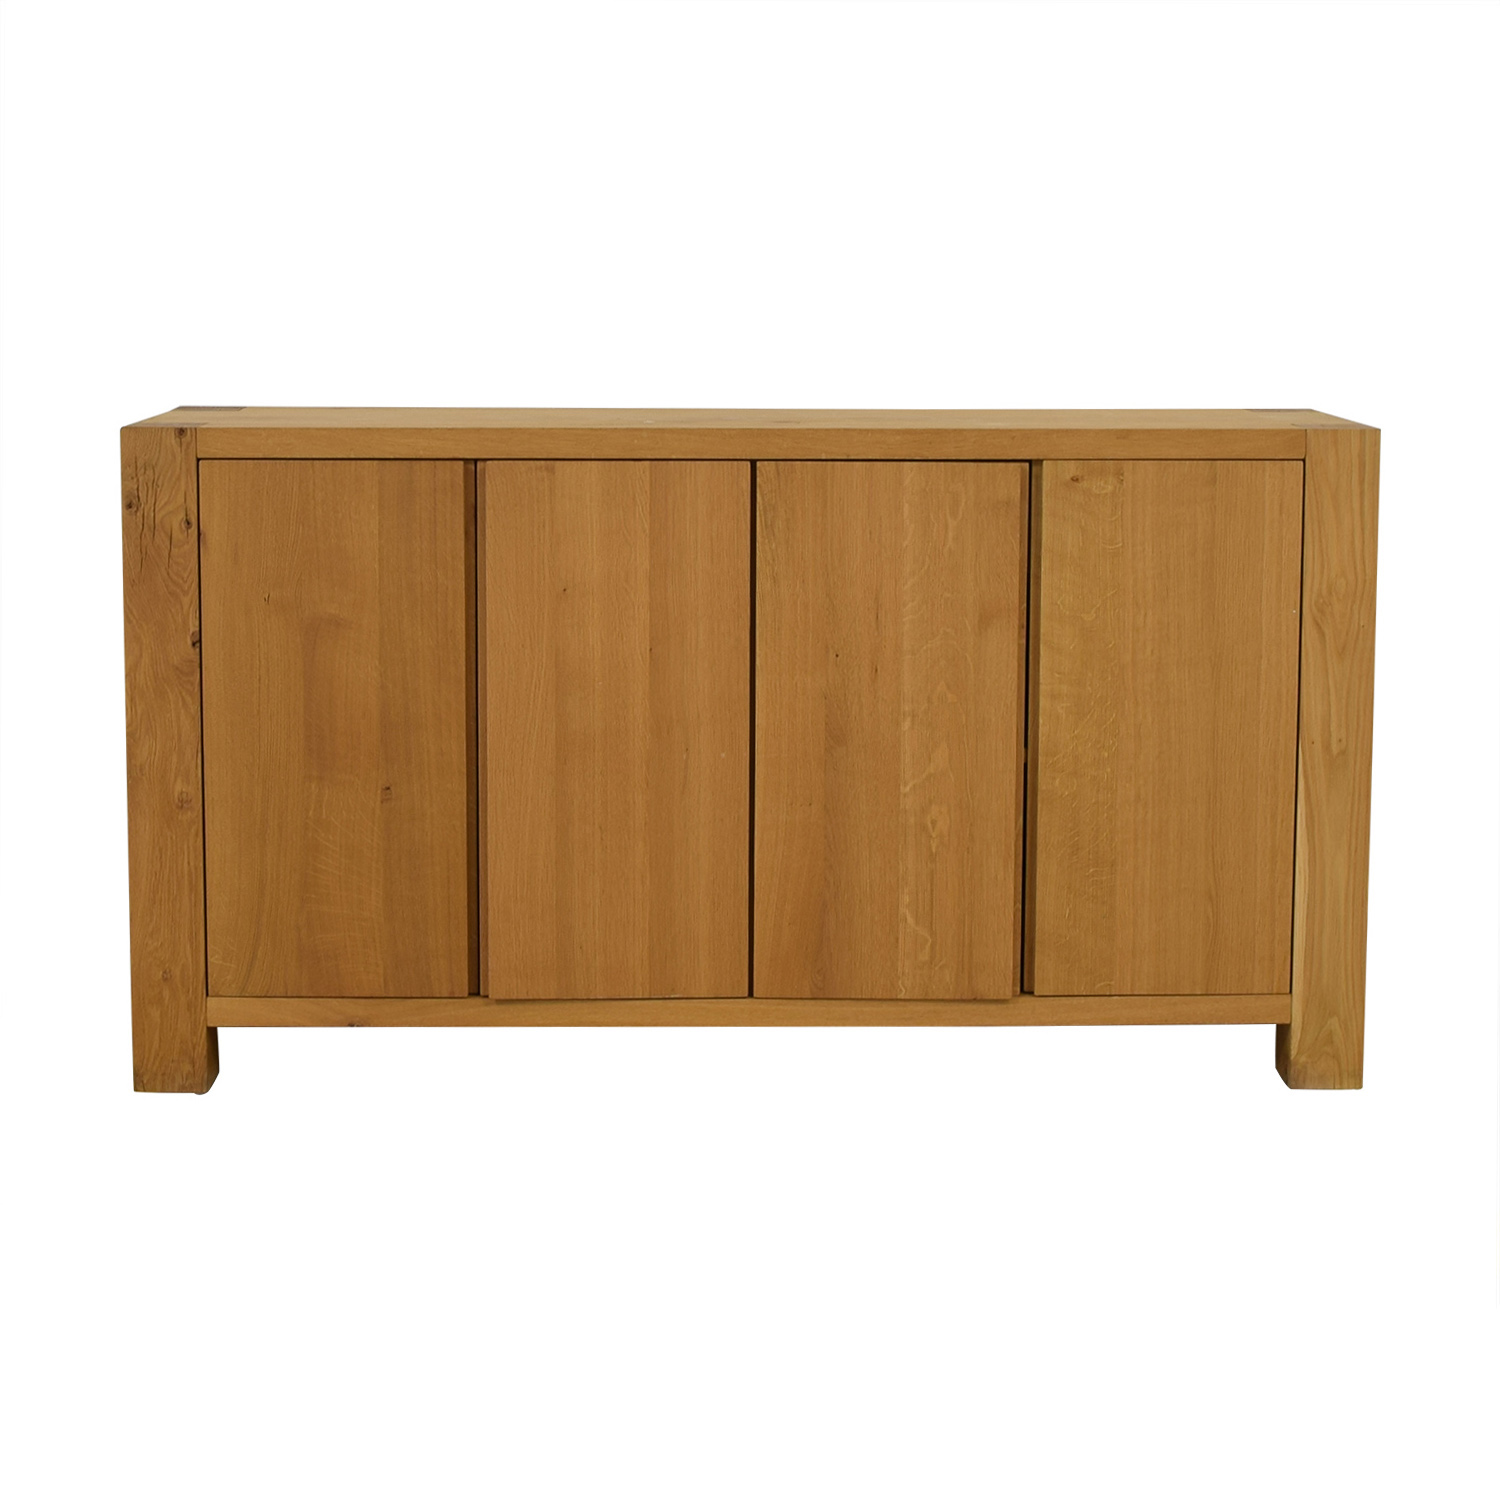 Crate & Barrel Big Sur Sideboard Crate & Barrel